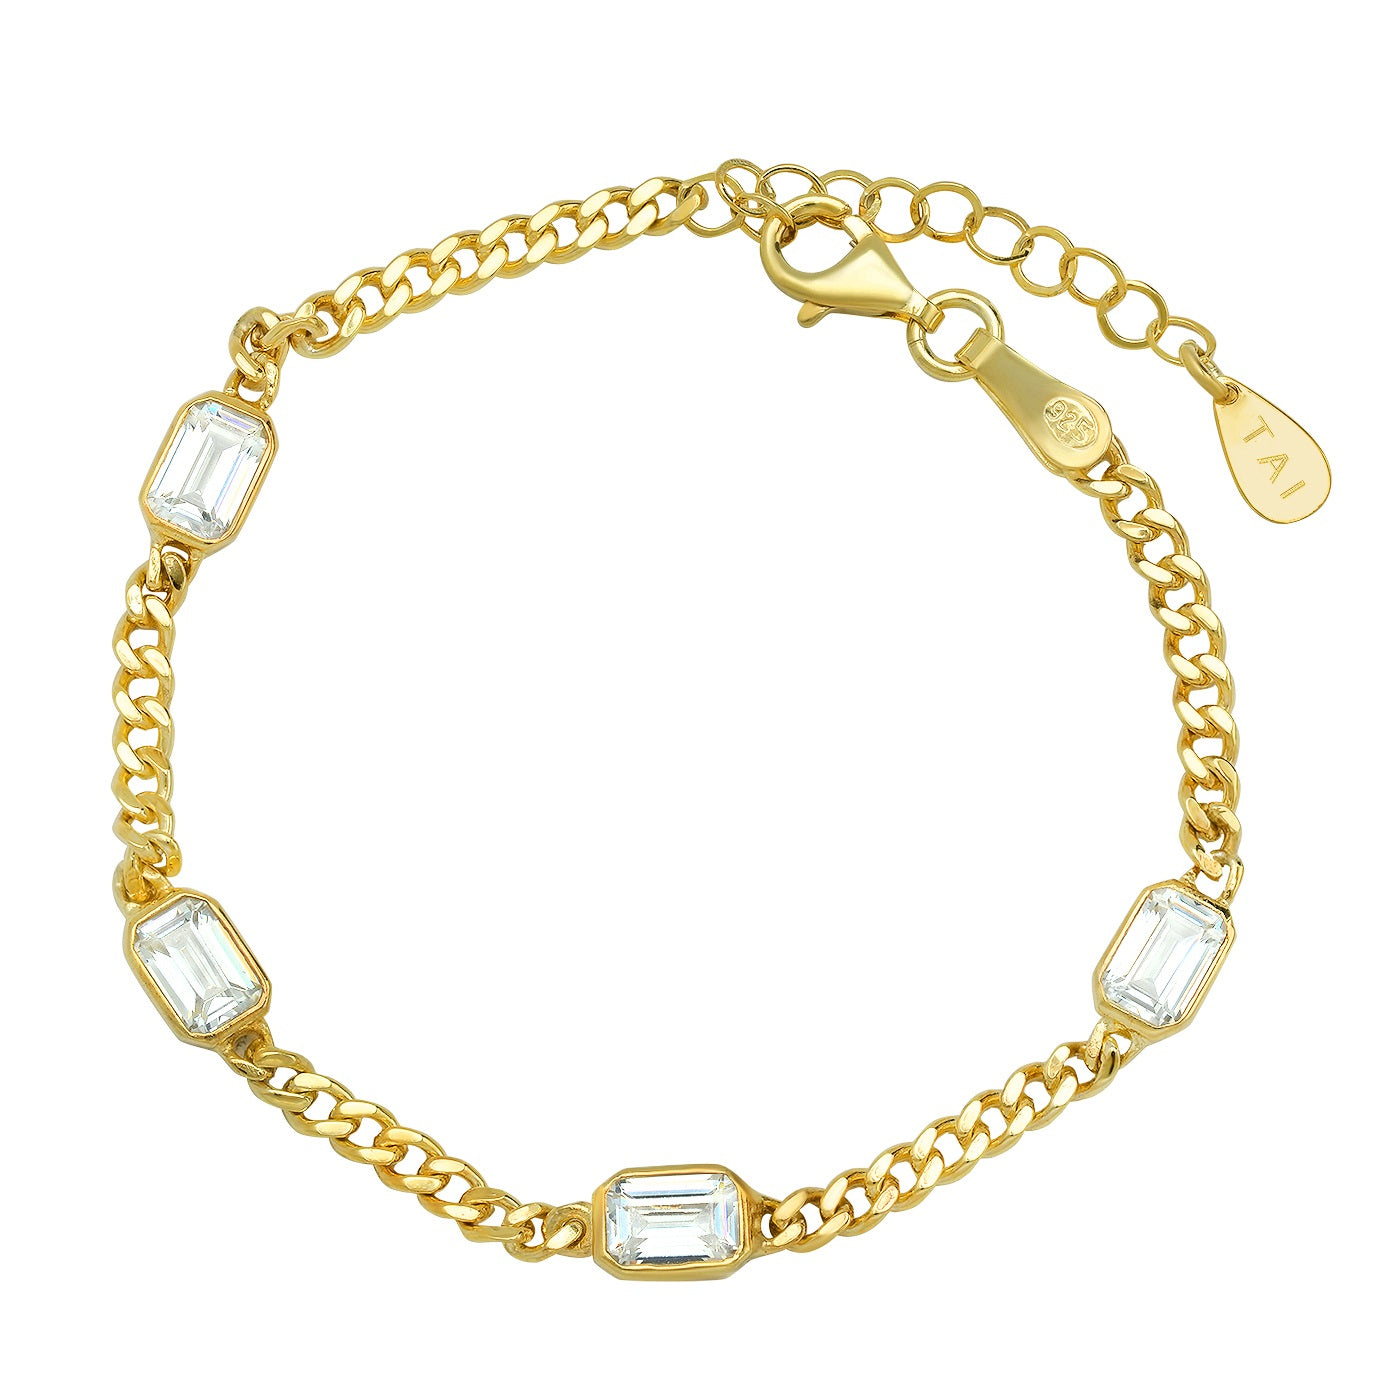 Gold Curb Chain With Bezel Set Emerald Cut CZ Stones